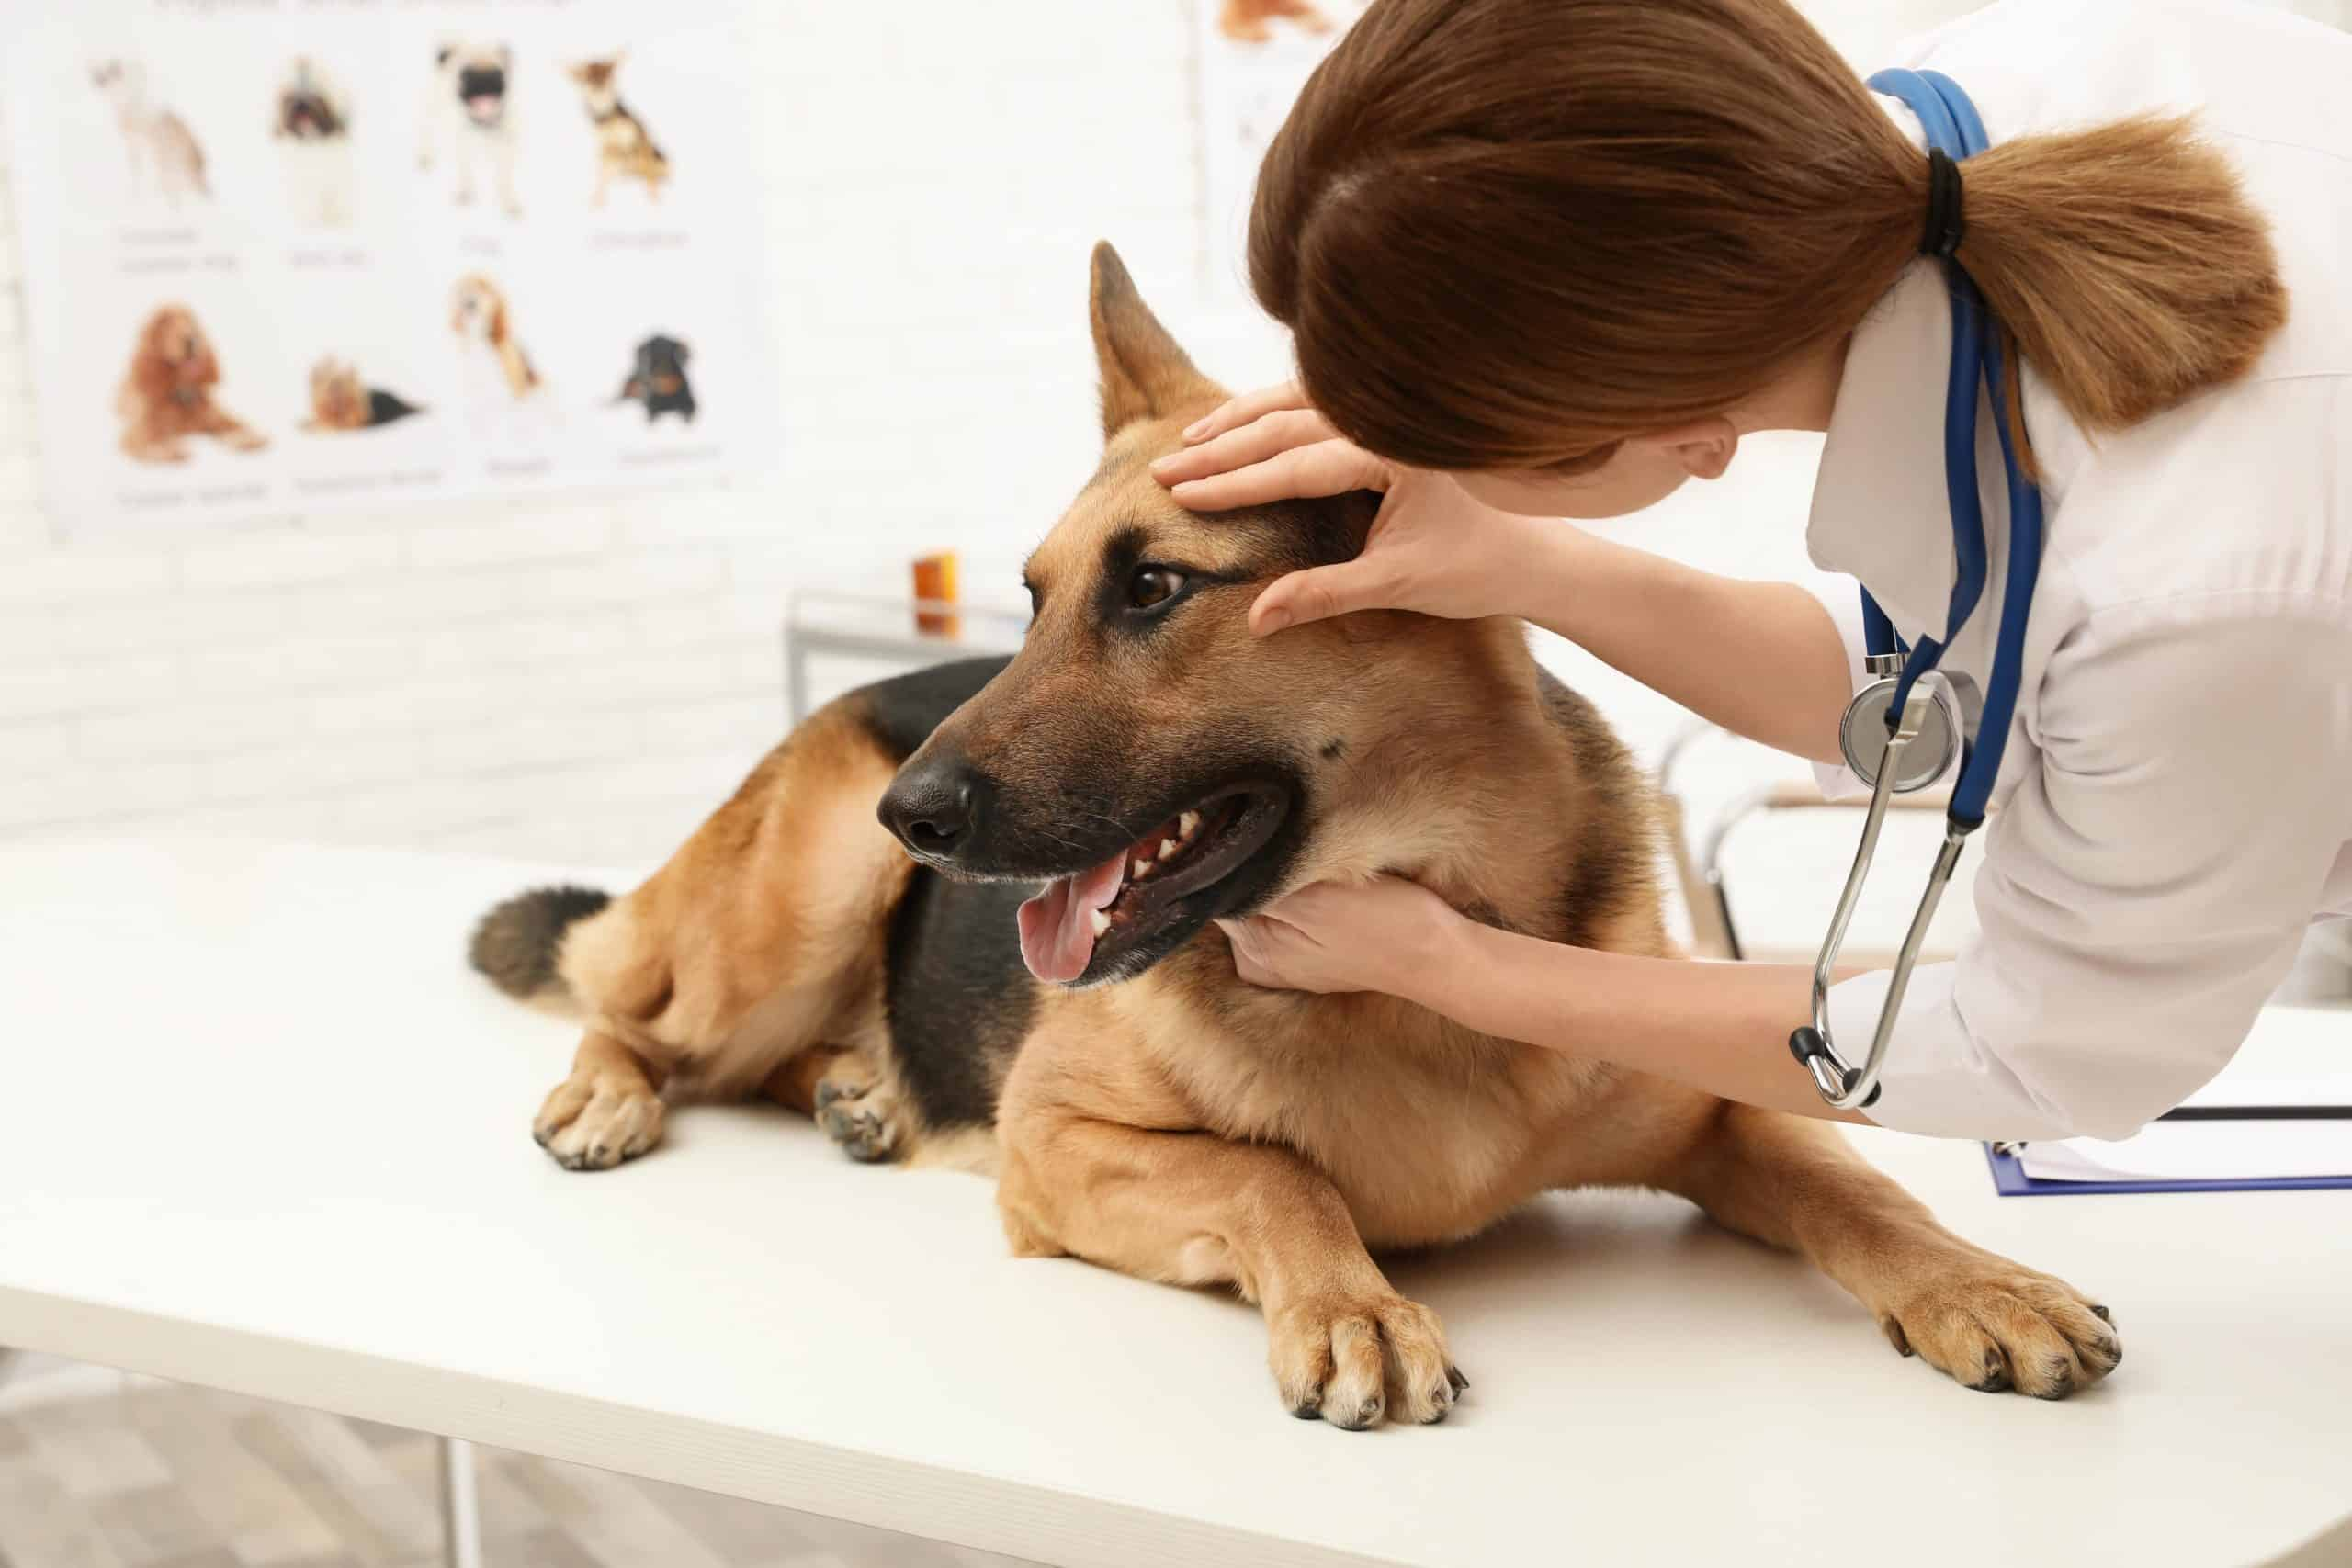 Vet examines German shepherd's eye. Canine epiphora or excessive watering or tear flow is harmless for a few dog breeds but may cause loss of vision in others.